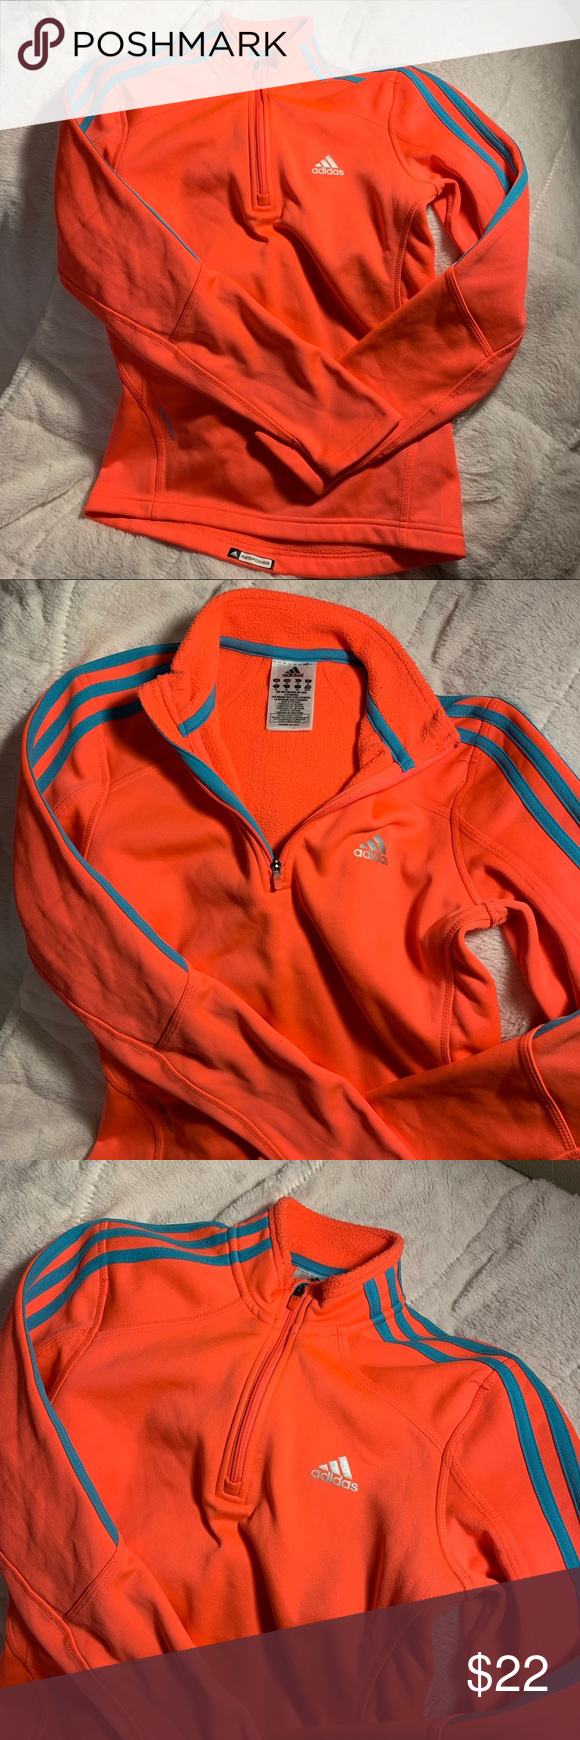 Adidas Formotion Climawarm Pullover A like new Adidas